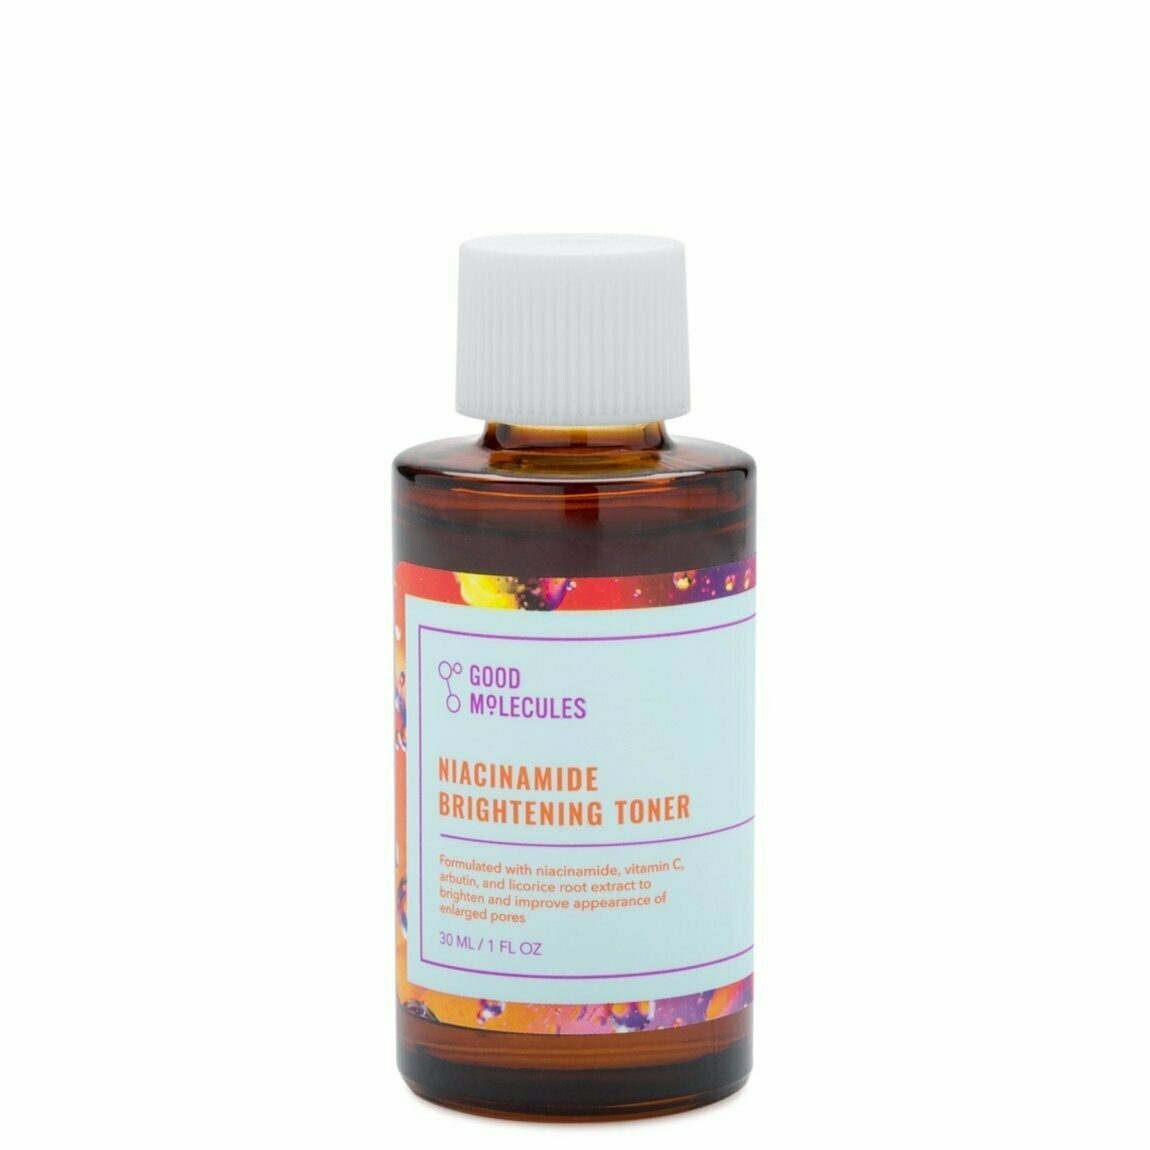 Niacinamide Brightening Toner Travel Size - GOOD MOLECULES